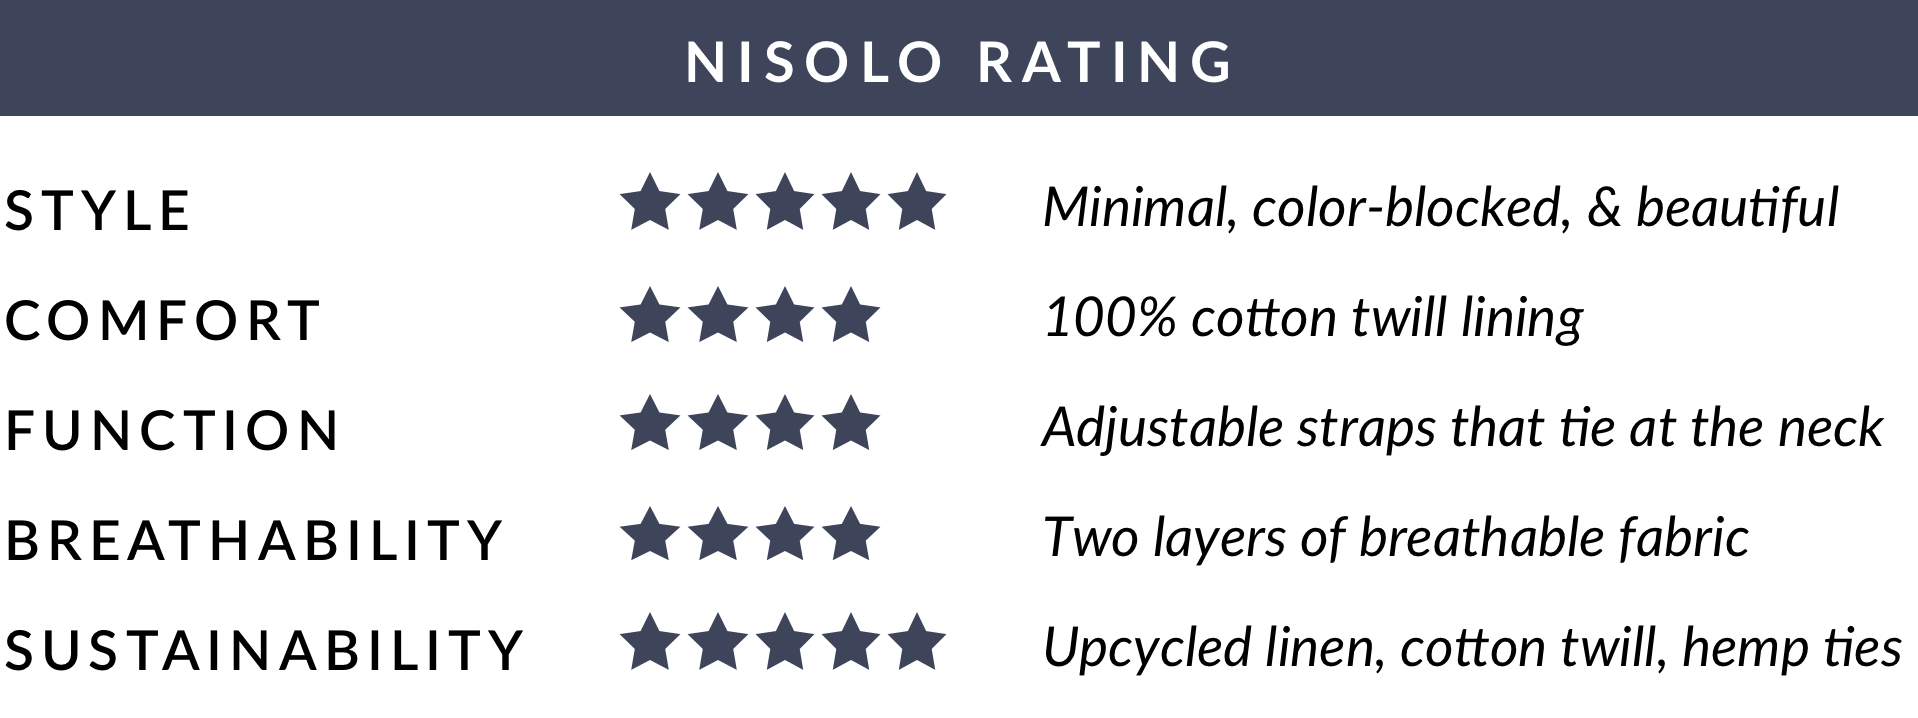 Nisolo Rating of EMLEE Upcycled Linen & Cotton Lined Mask - Grey/Sand - 4 out of 5 stars